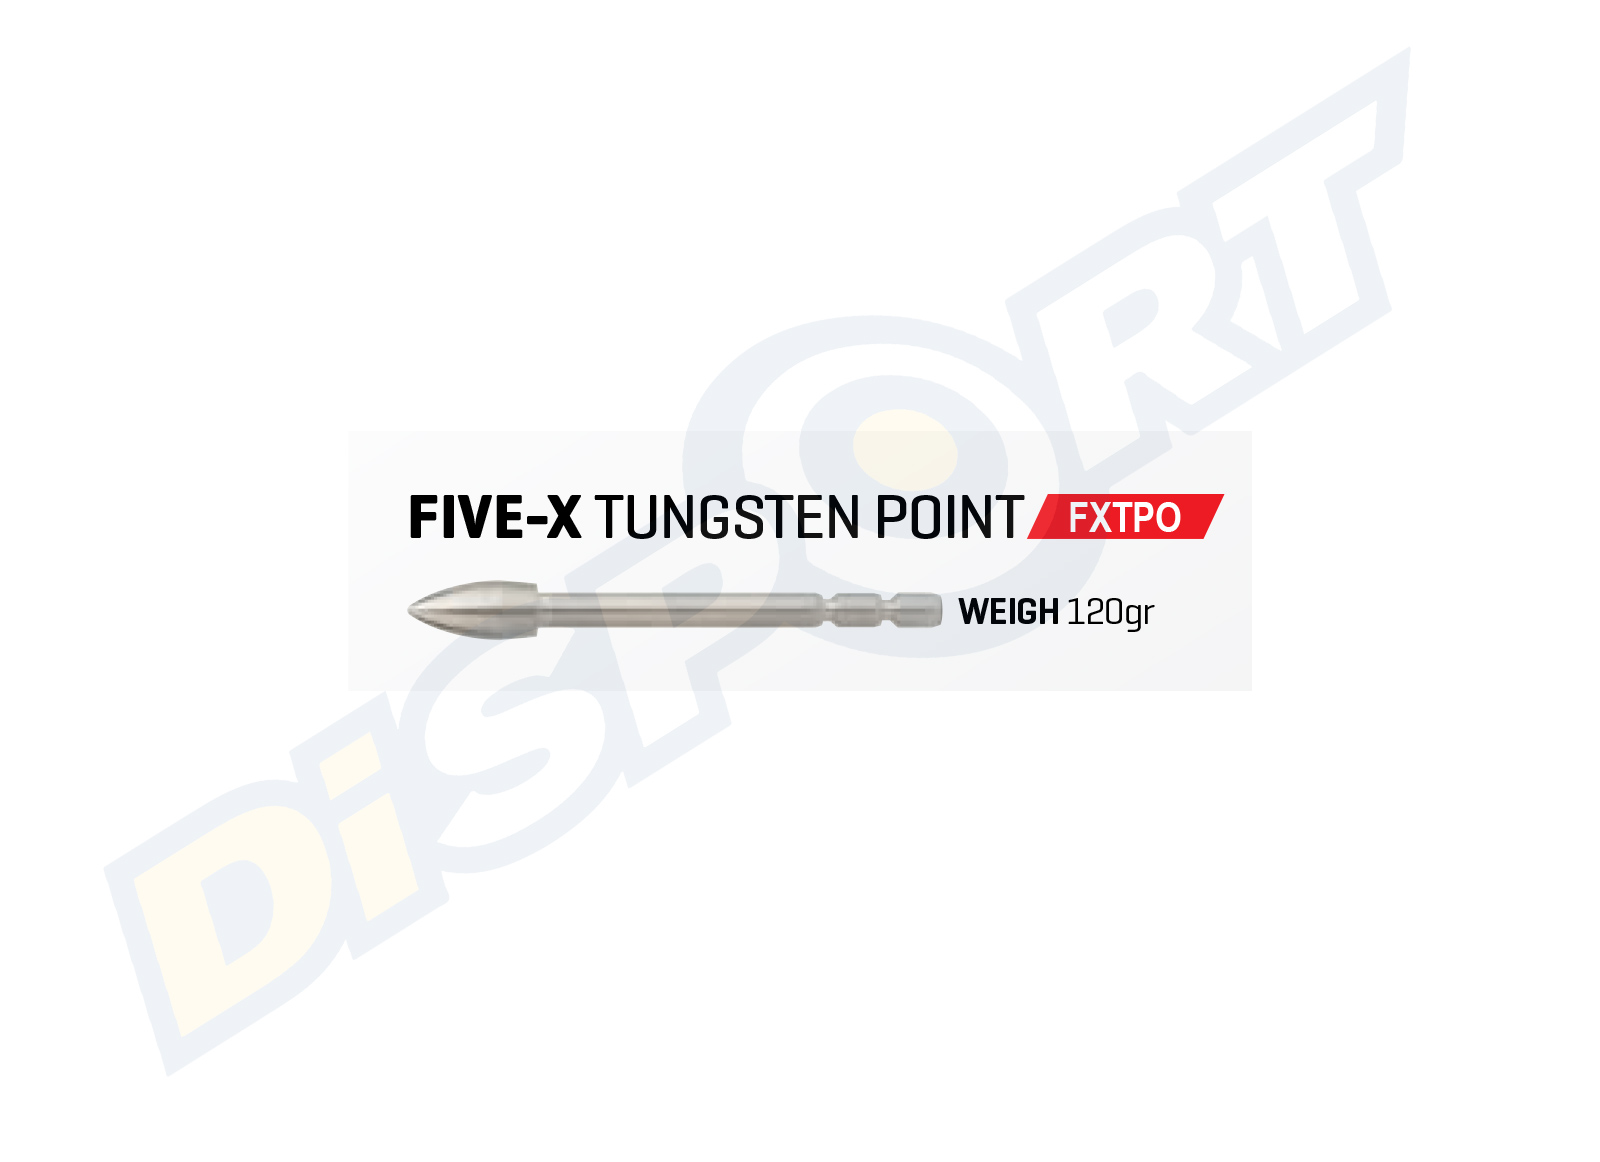 FIVICS PUNTA FIVE-X TUNGSTEN BREAK-OFF SET 12PZ